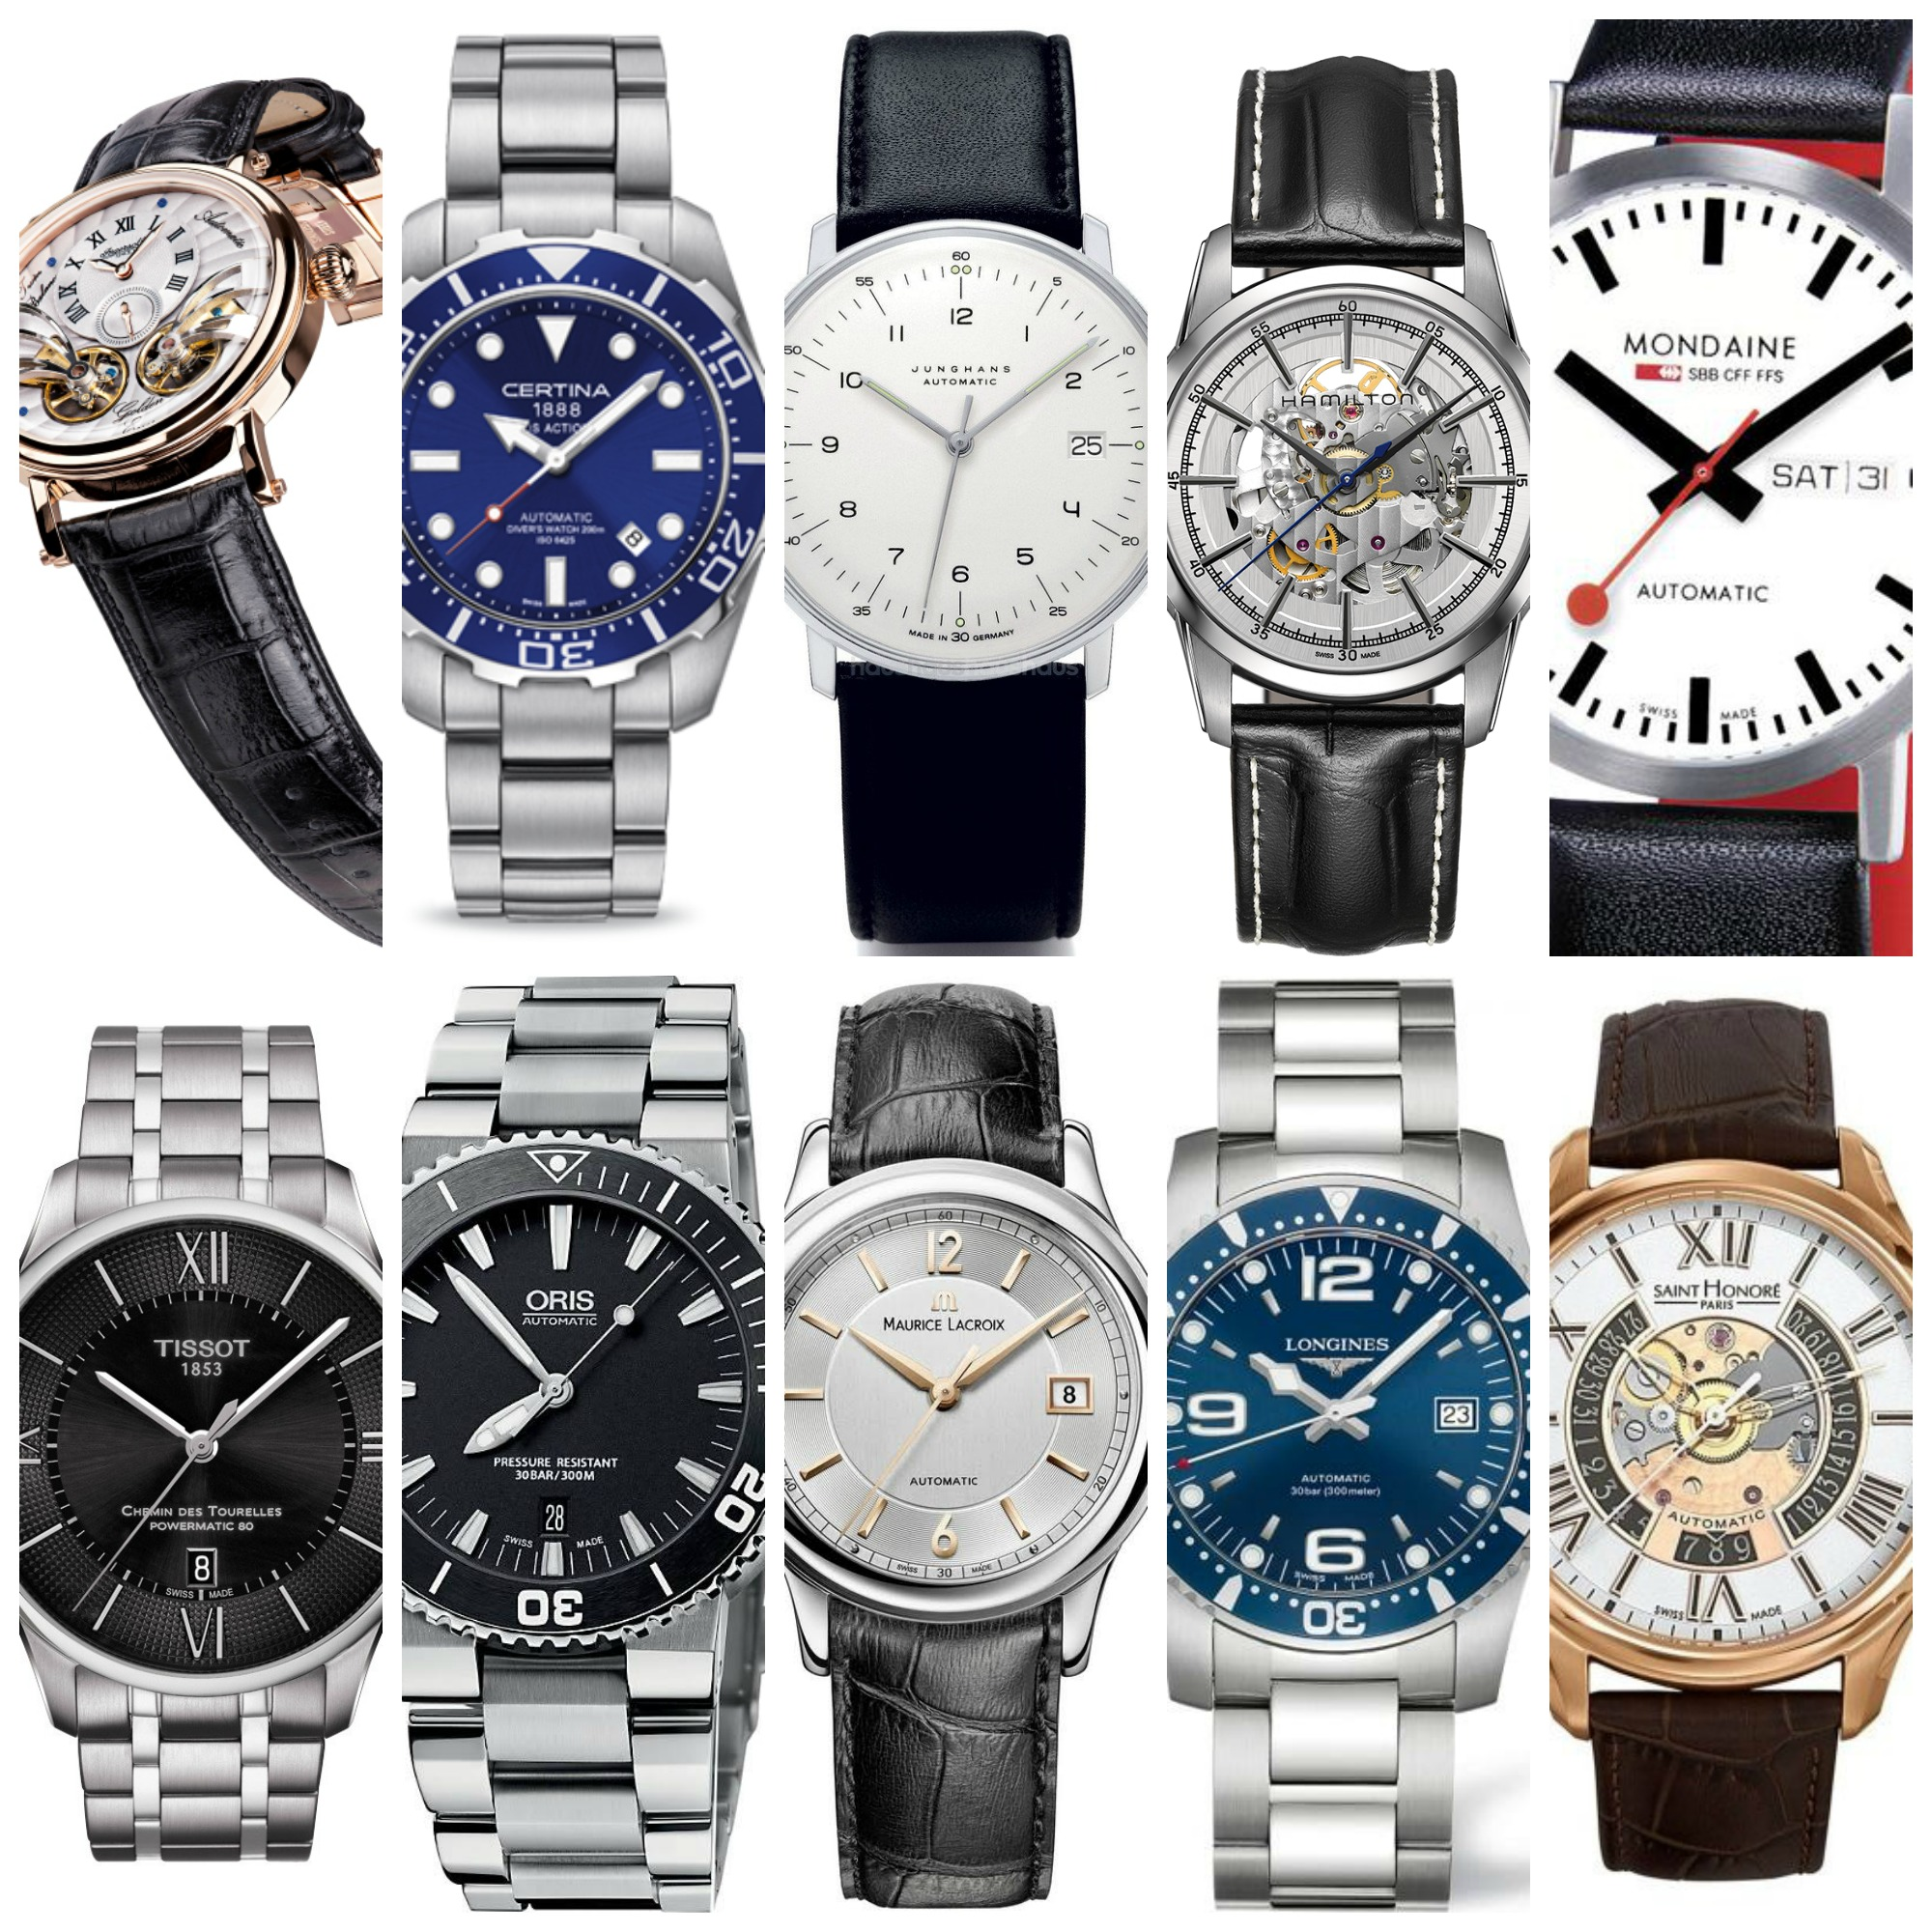 tuna watches spring reviews drive review luxury banner timeless being